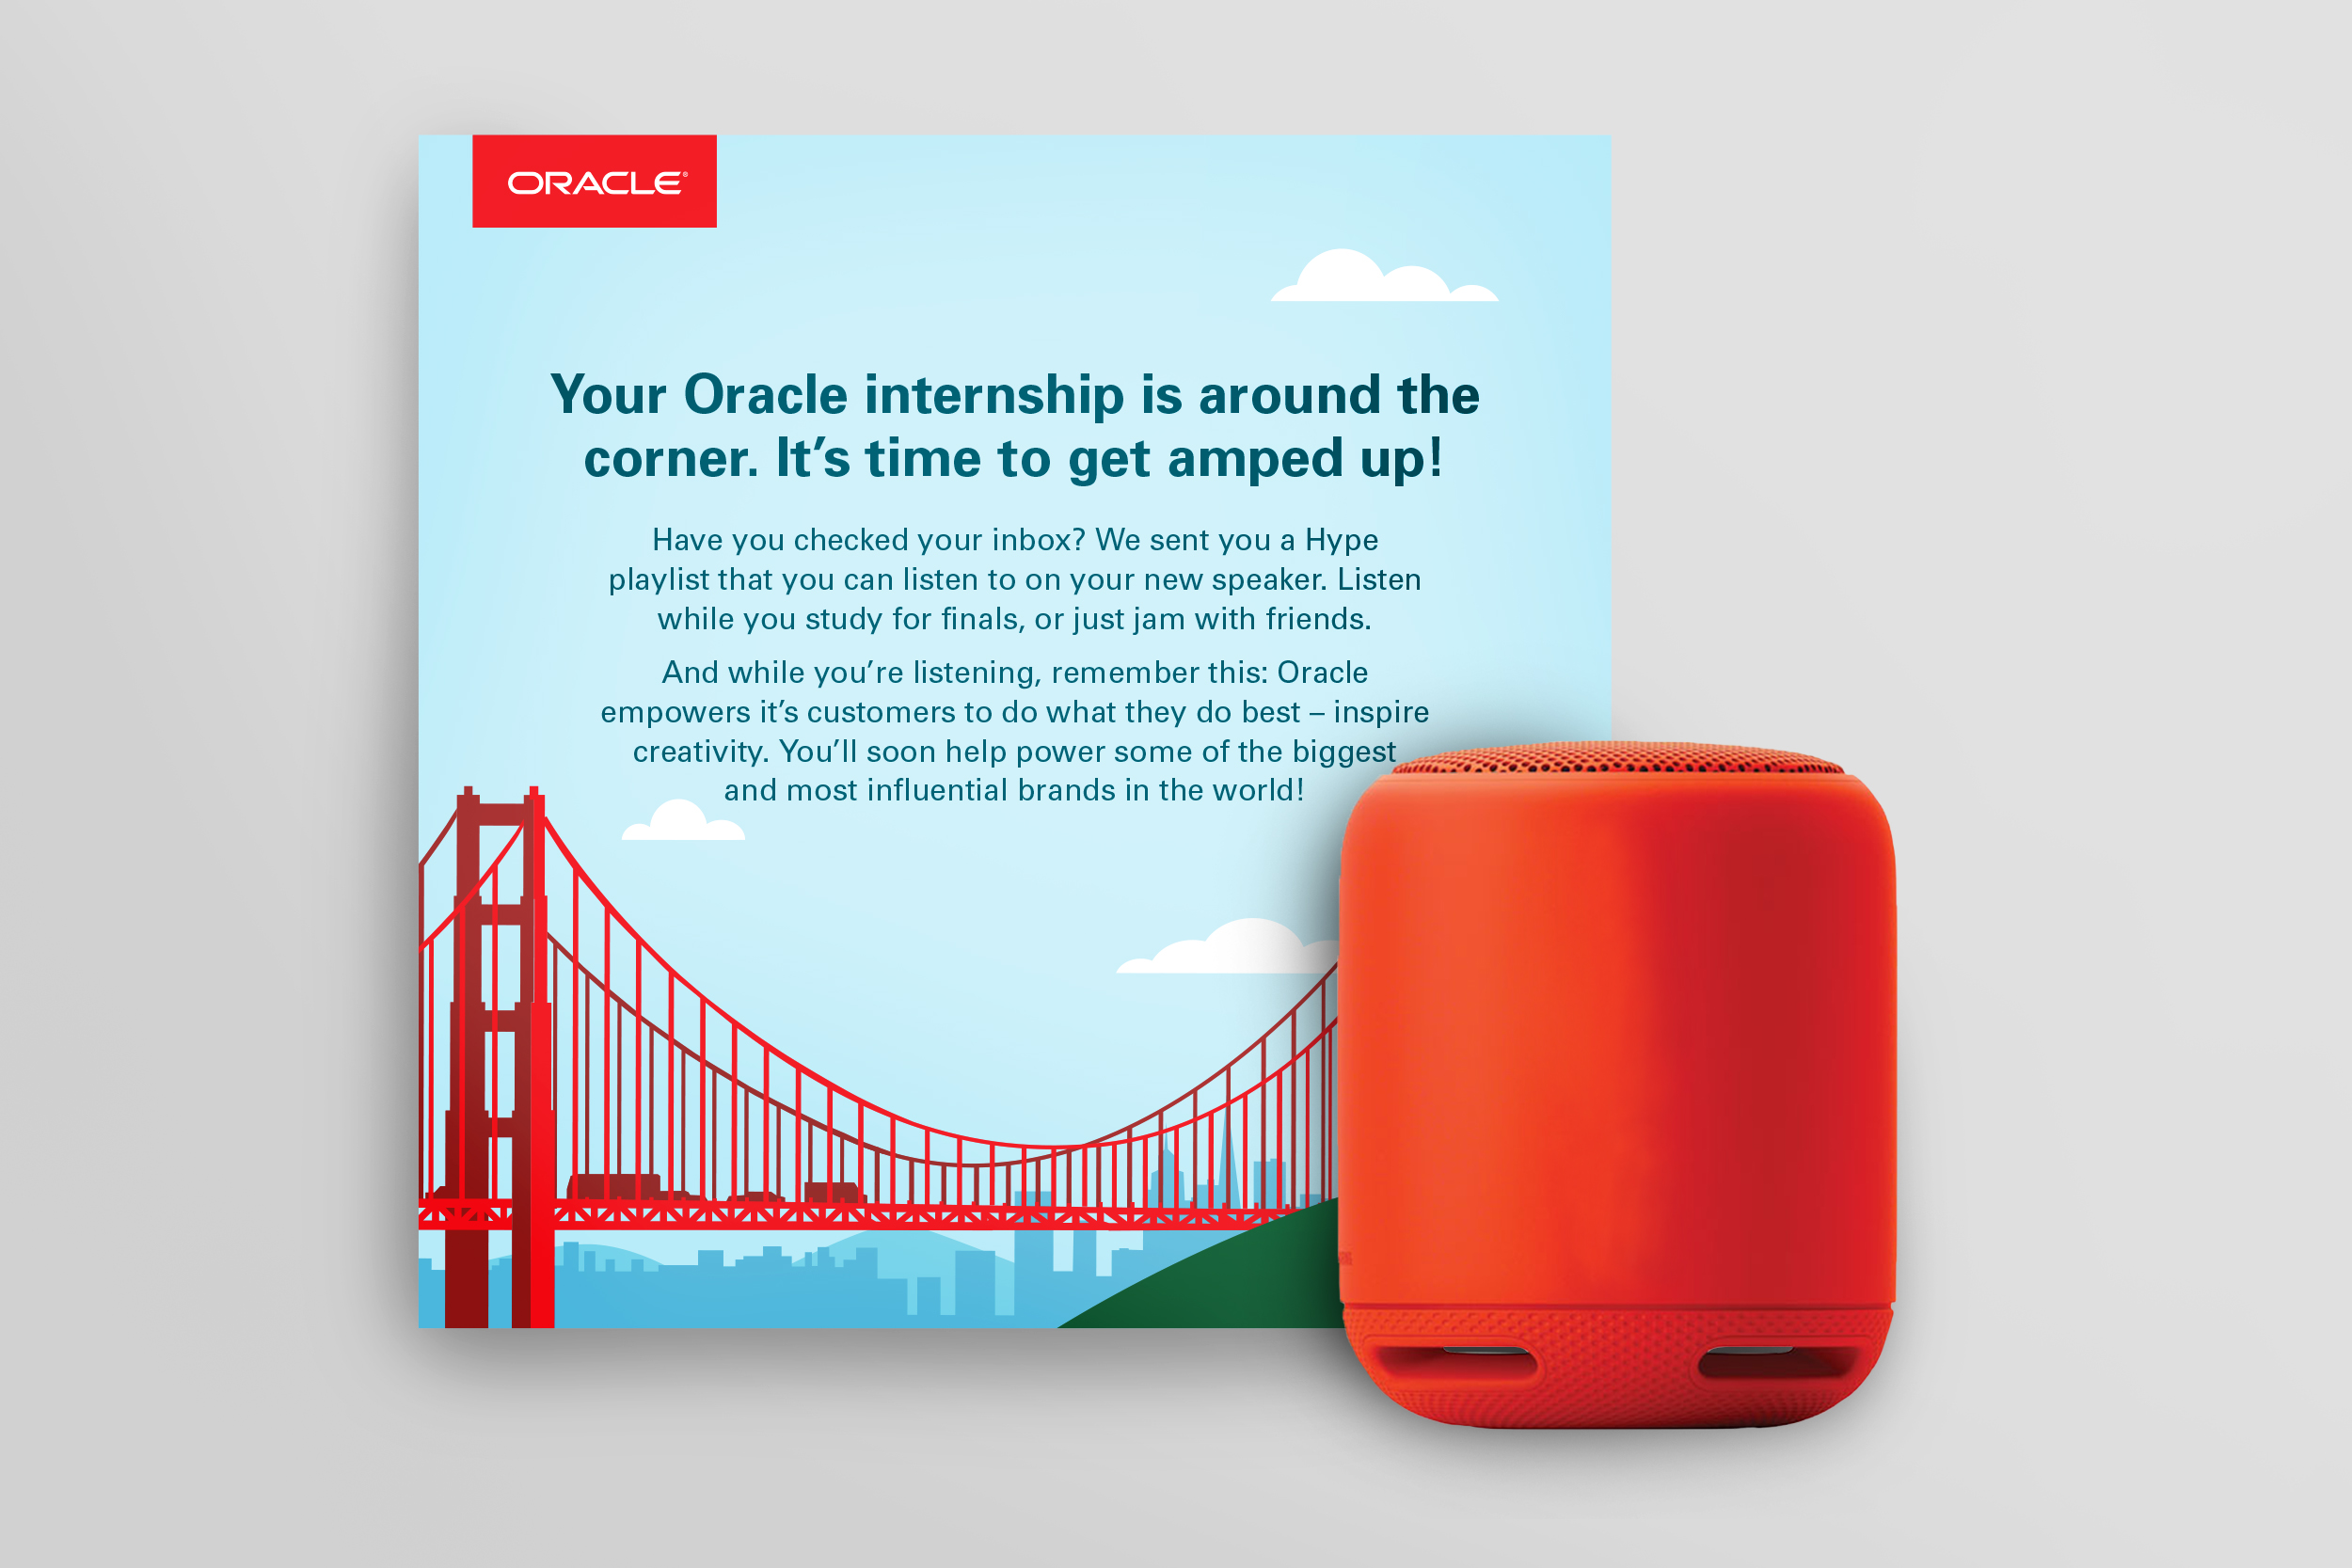 Oracle internship Sony touchpoint